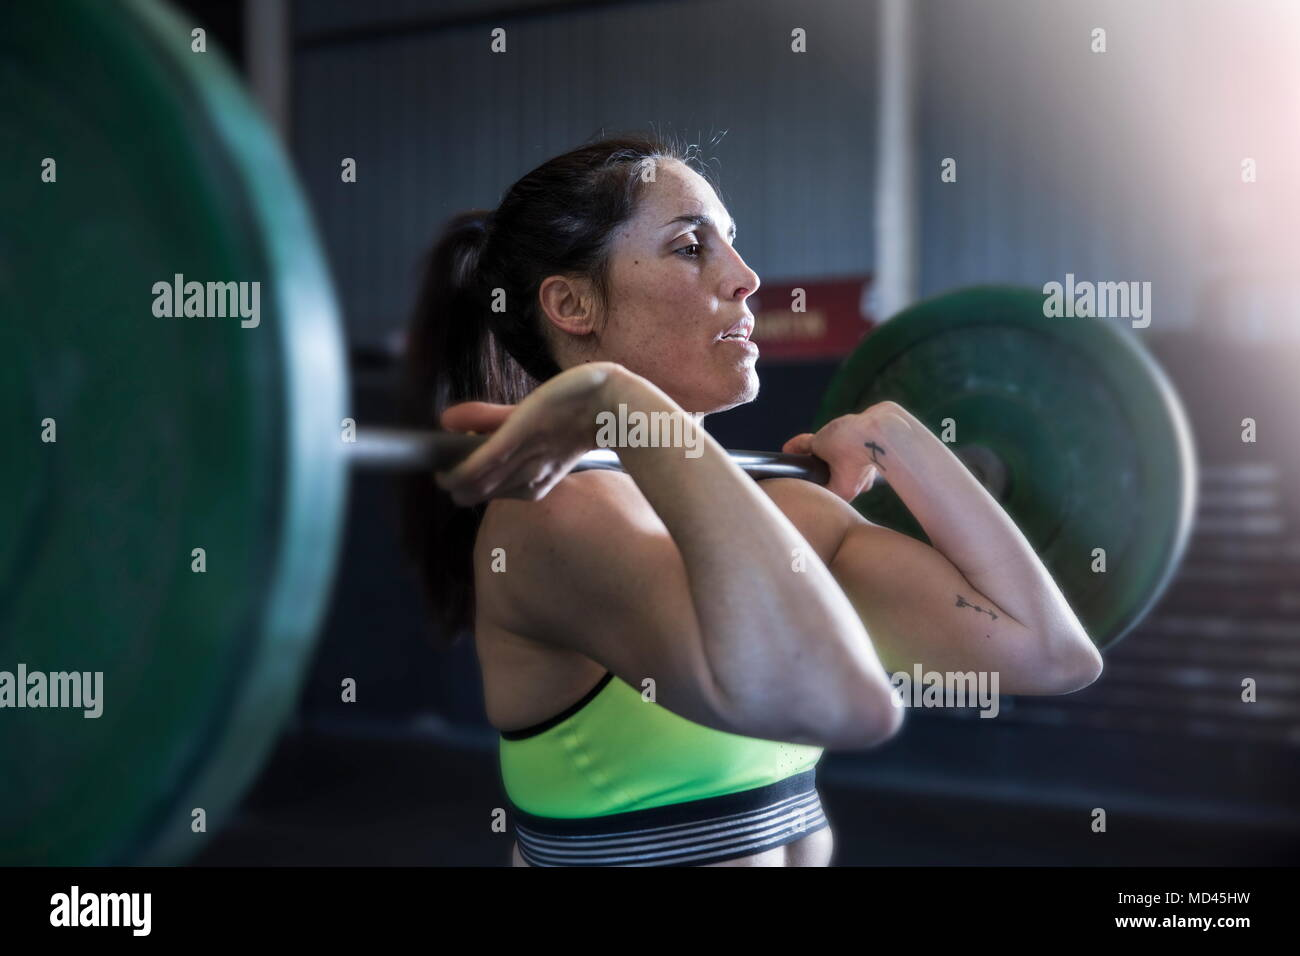 Woman exercising in gym, using barbell - Stock Image